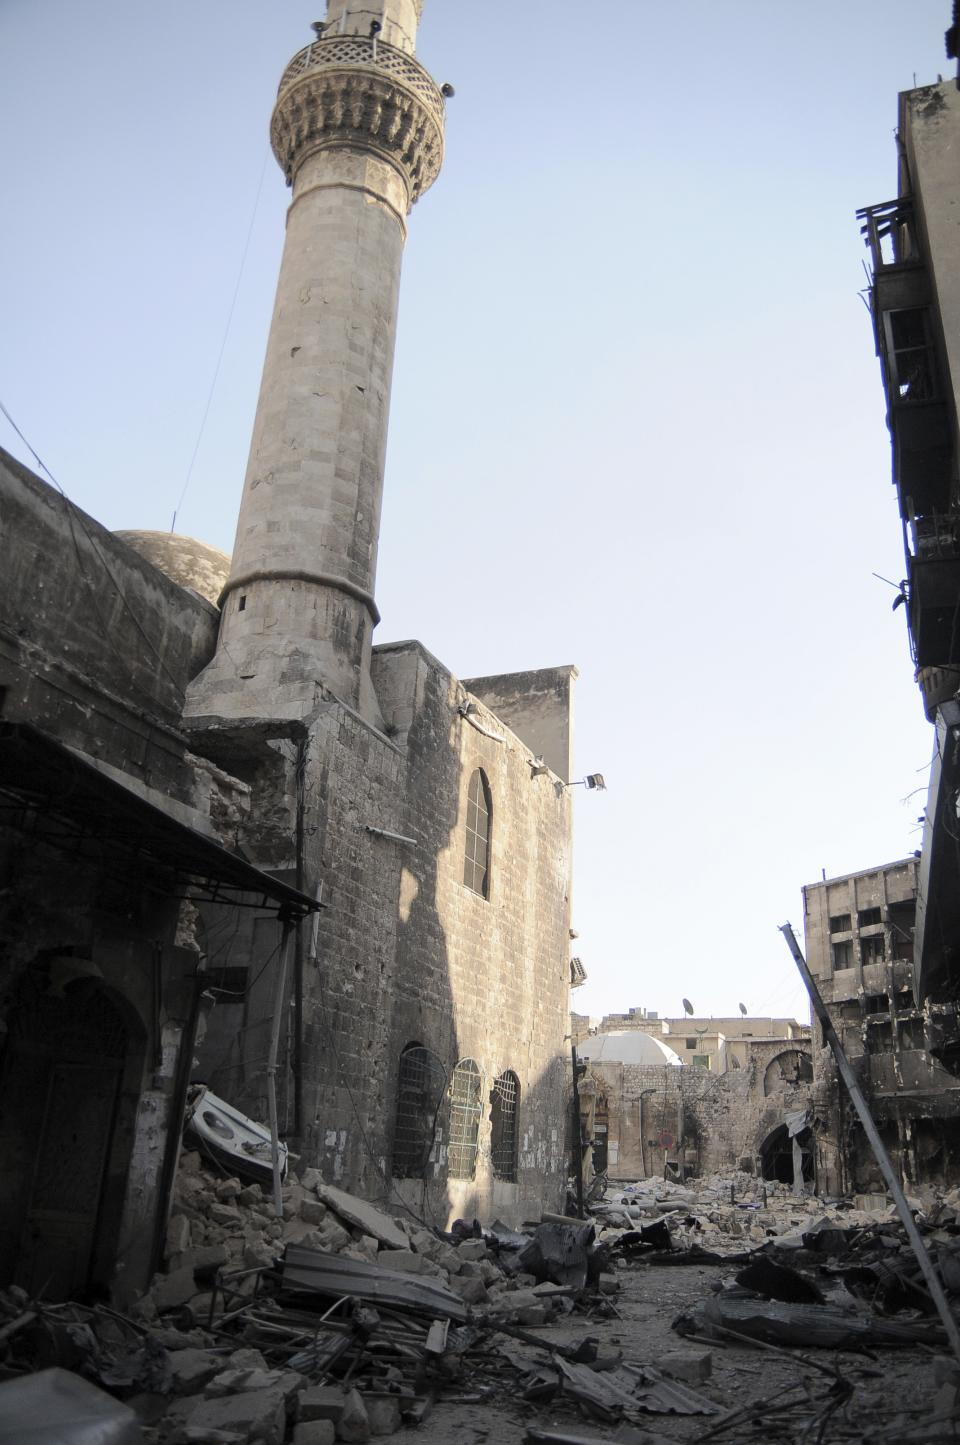 In this Tuesday, Nov. 6, 2012 photo, a mosque on Bab al-Nasser street, seriously damage by the shelling and fighting, is seen in the Old City of Aleppo, Syria, now controlled by the Free Syrian Army.(AP Photo/Monica Prieto)